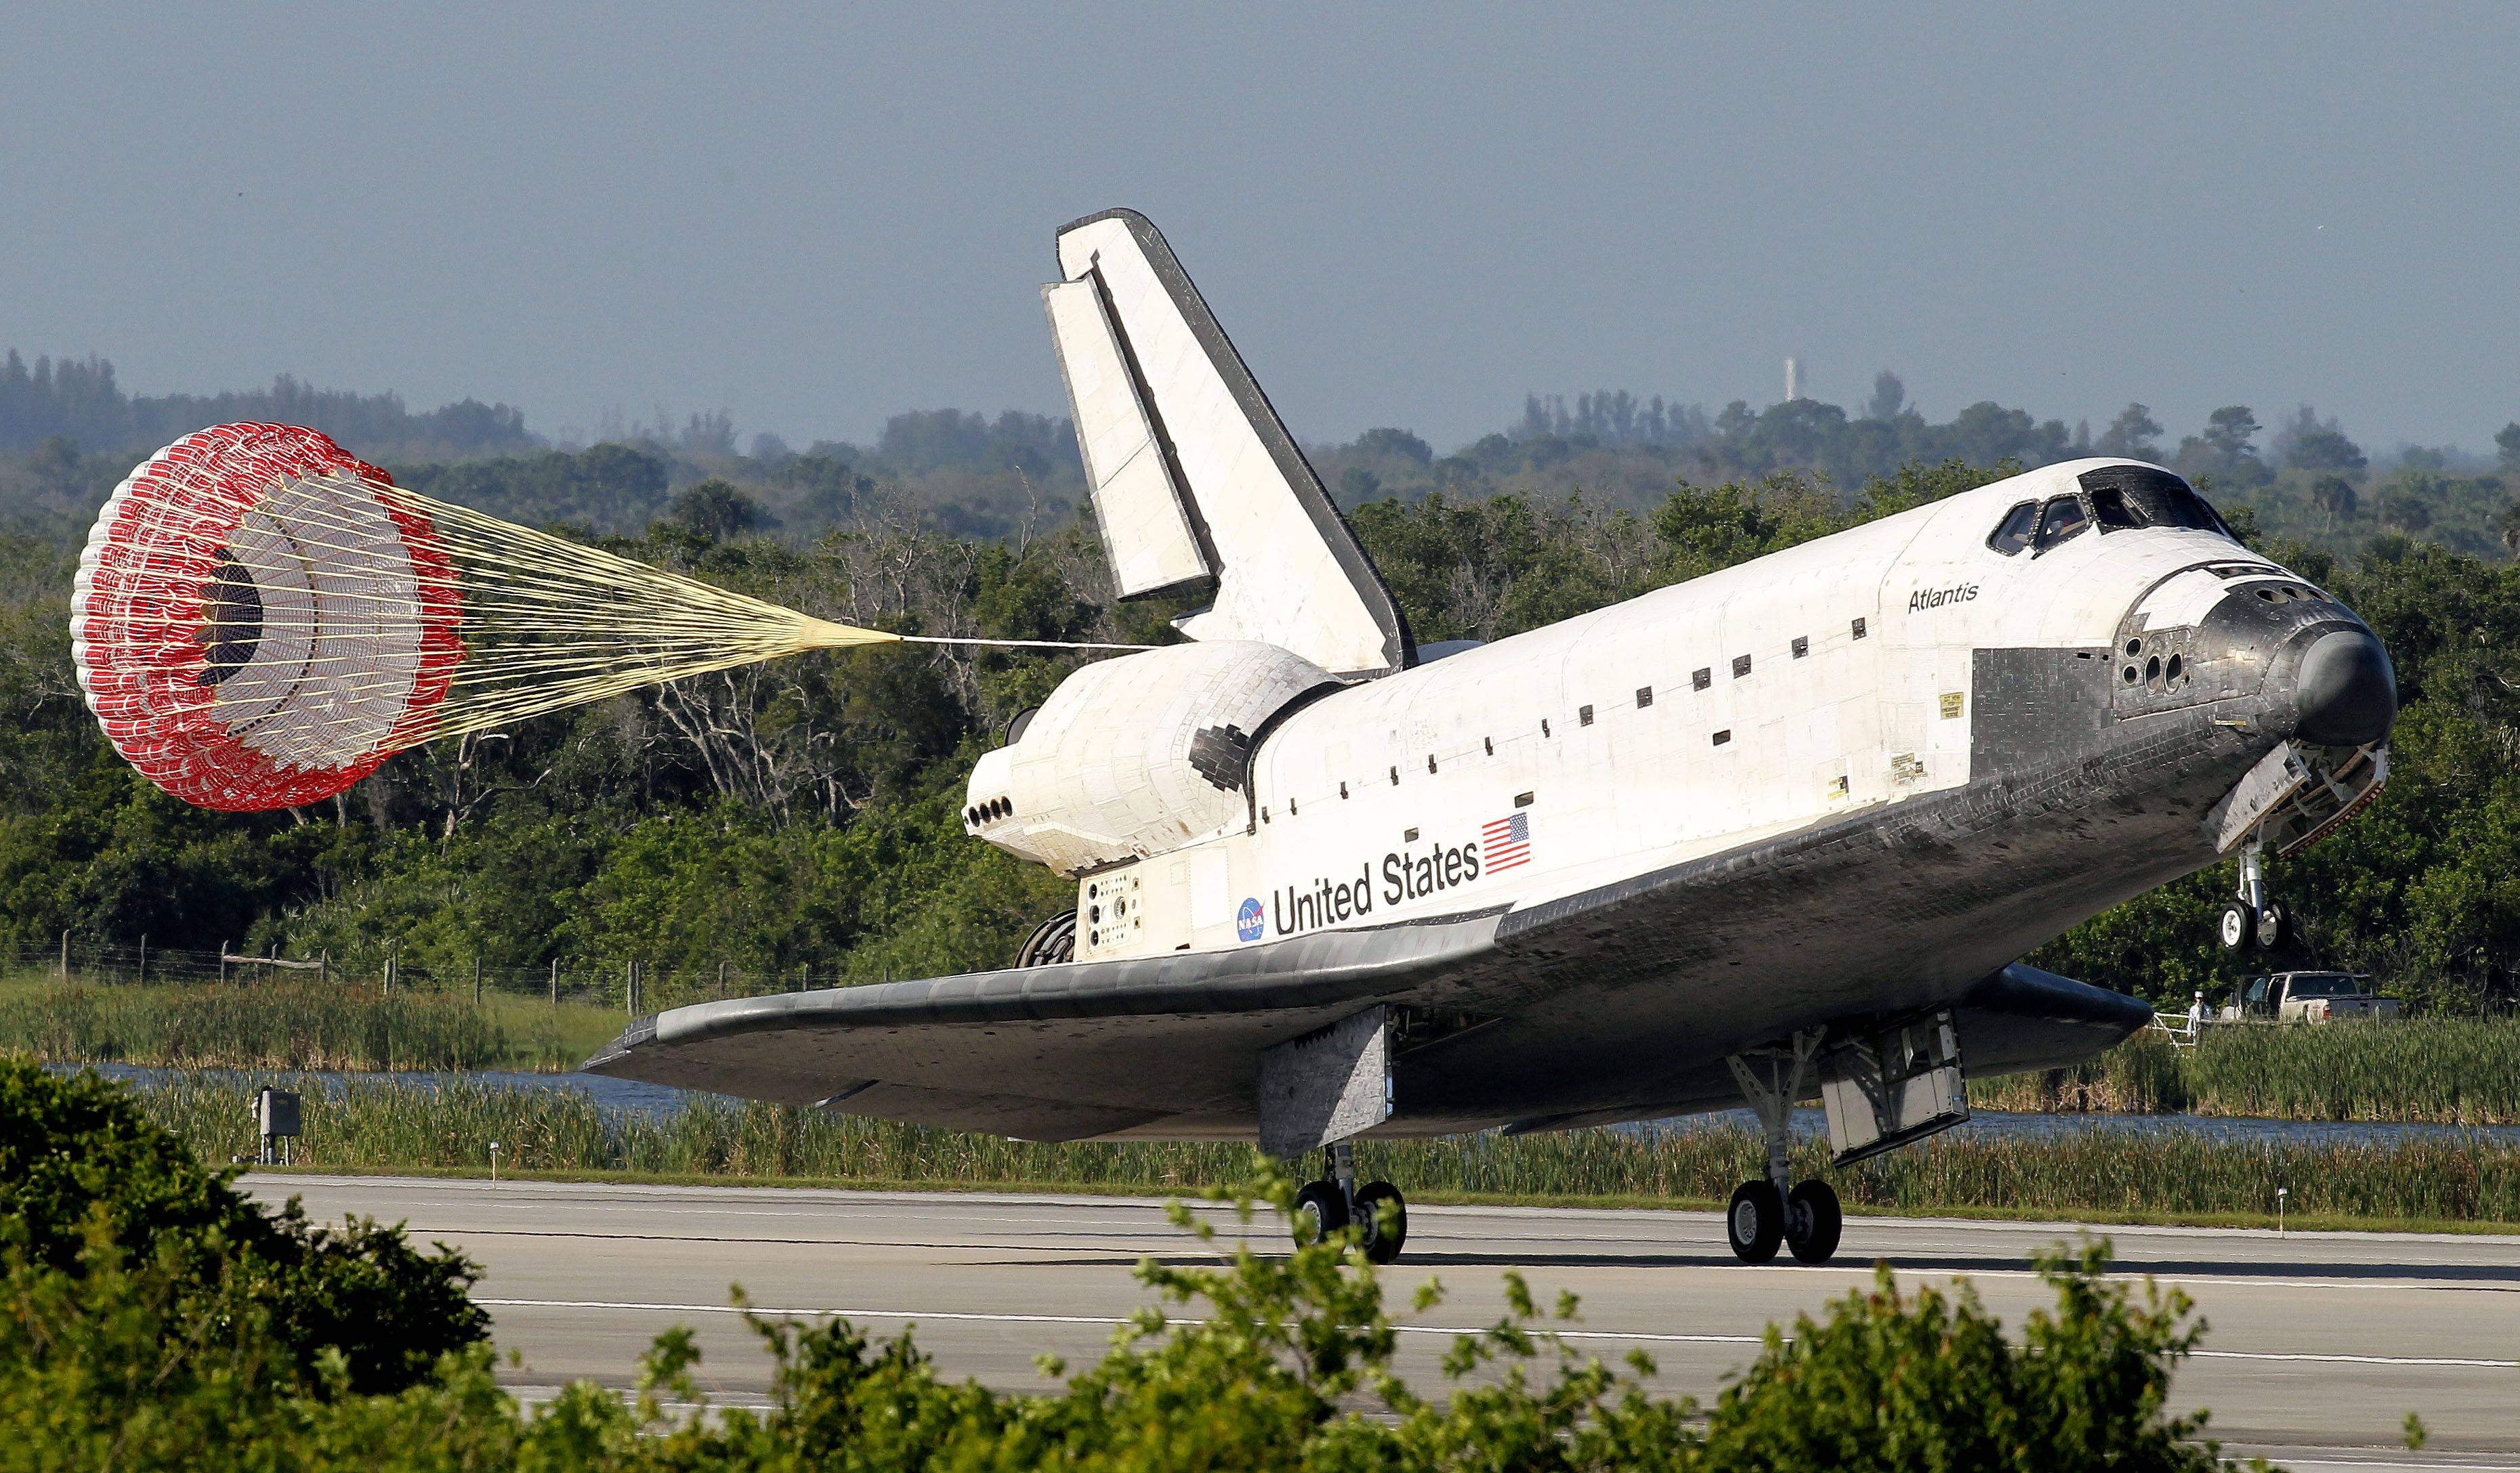 The space shuttle Atlantis lands at the Kennedy Space Center on May 26, 2010, in Cape Canaveral, Fla.